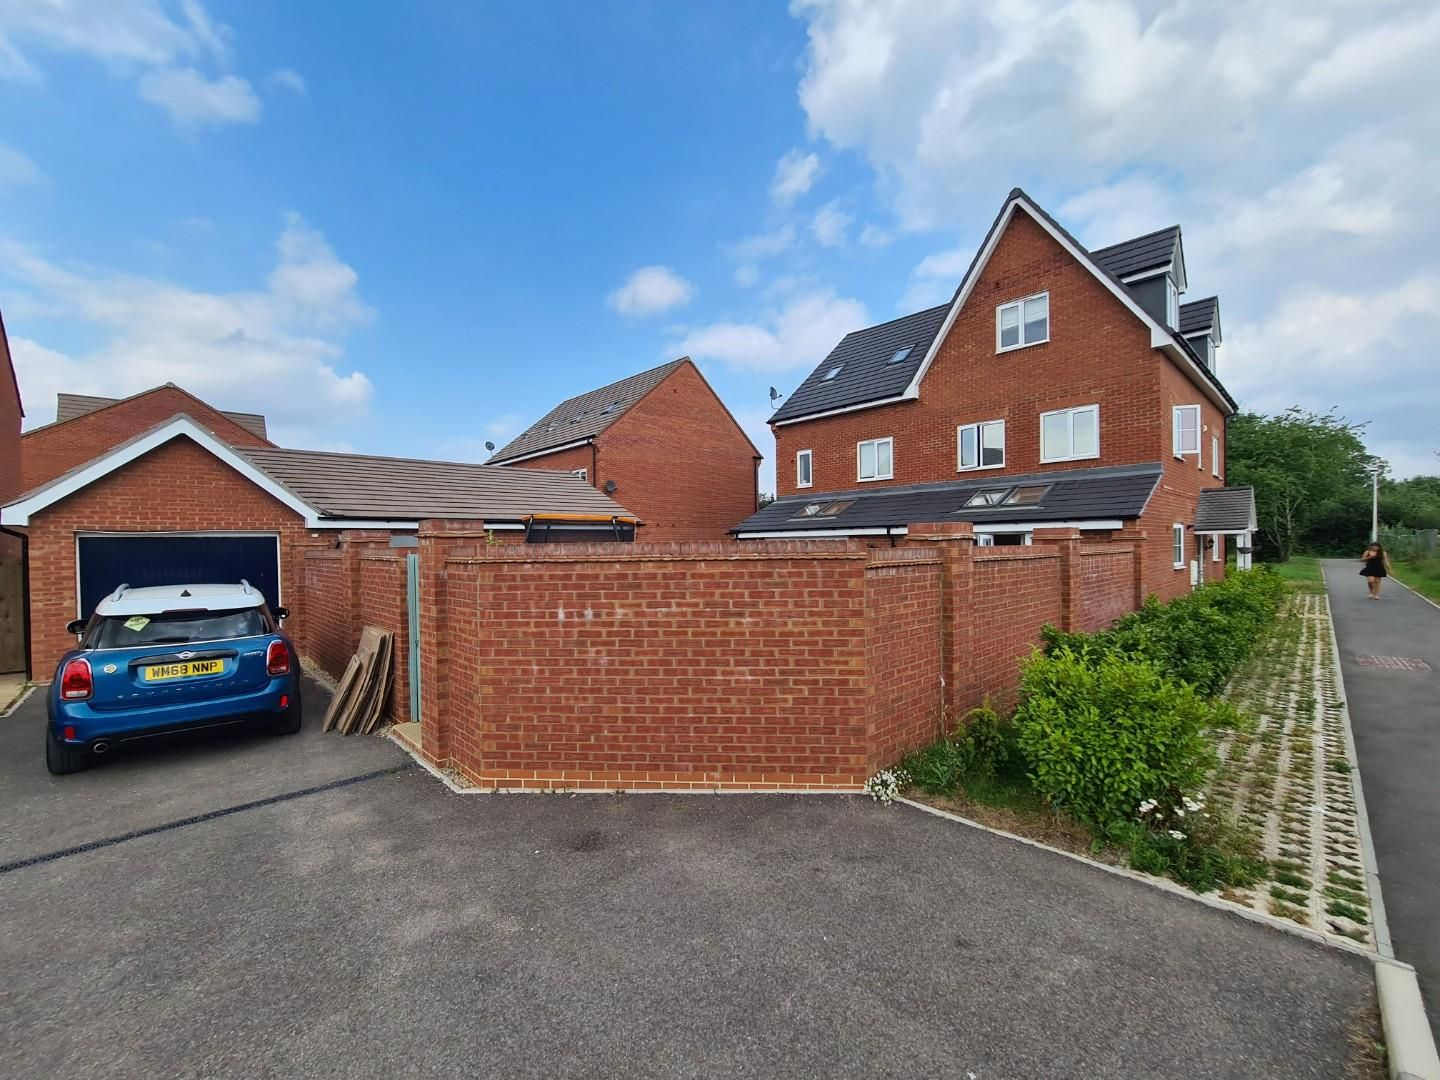 4 bed town house to rent in Shinfield 13